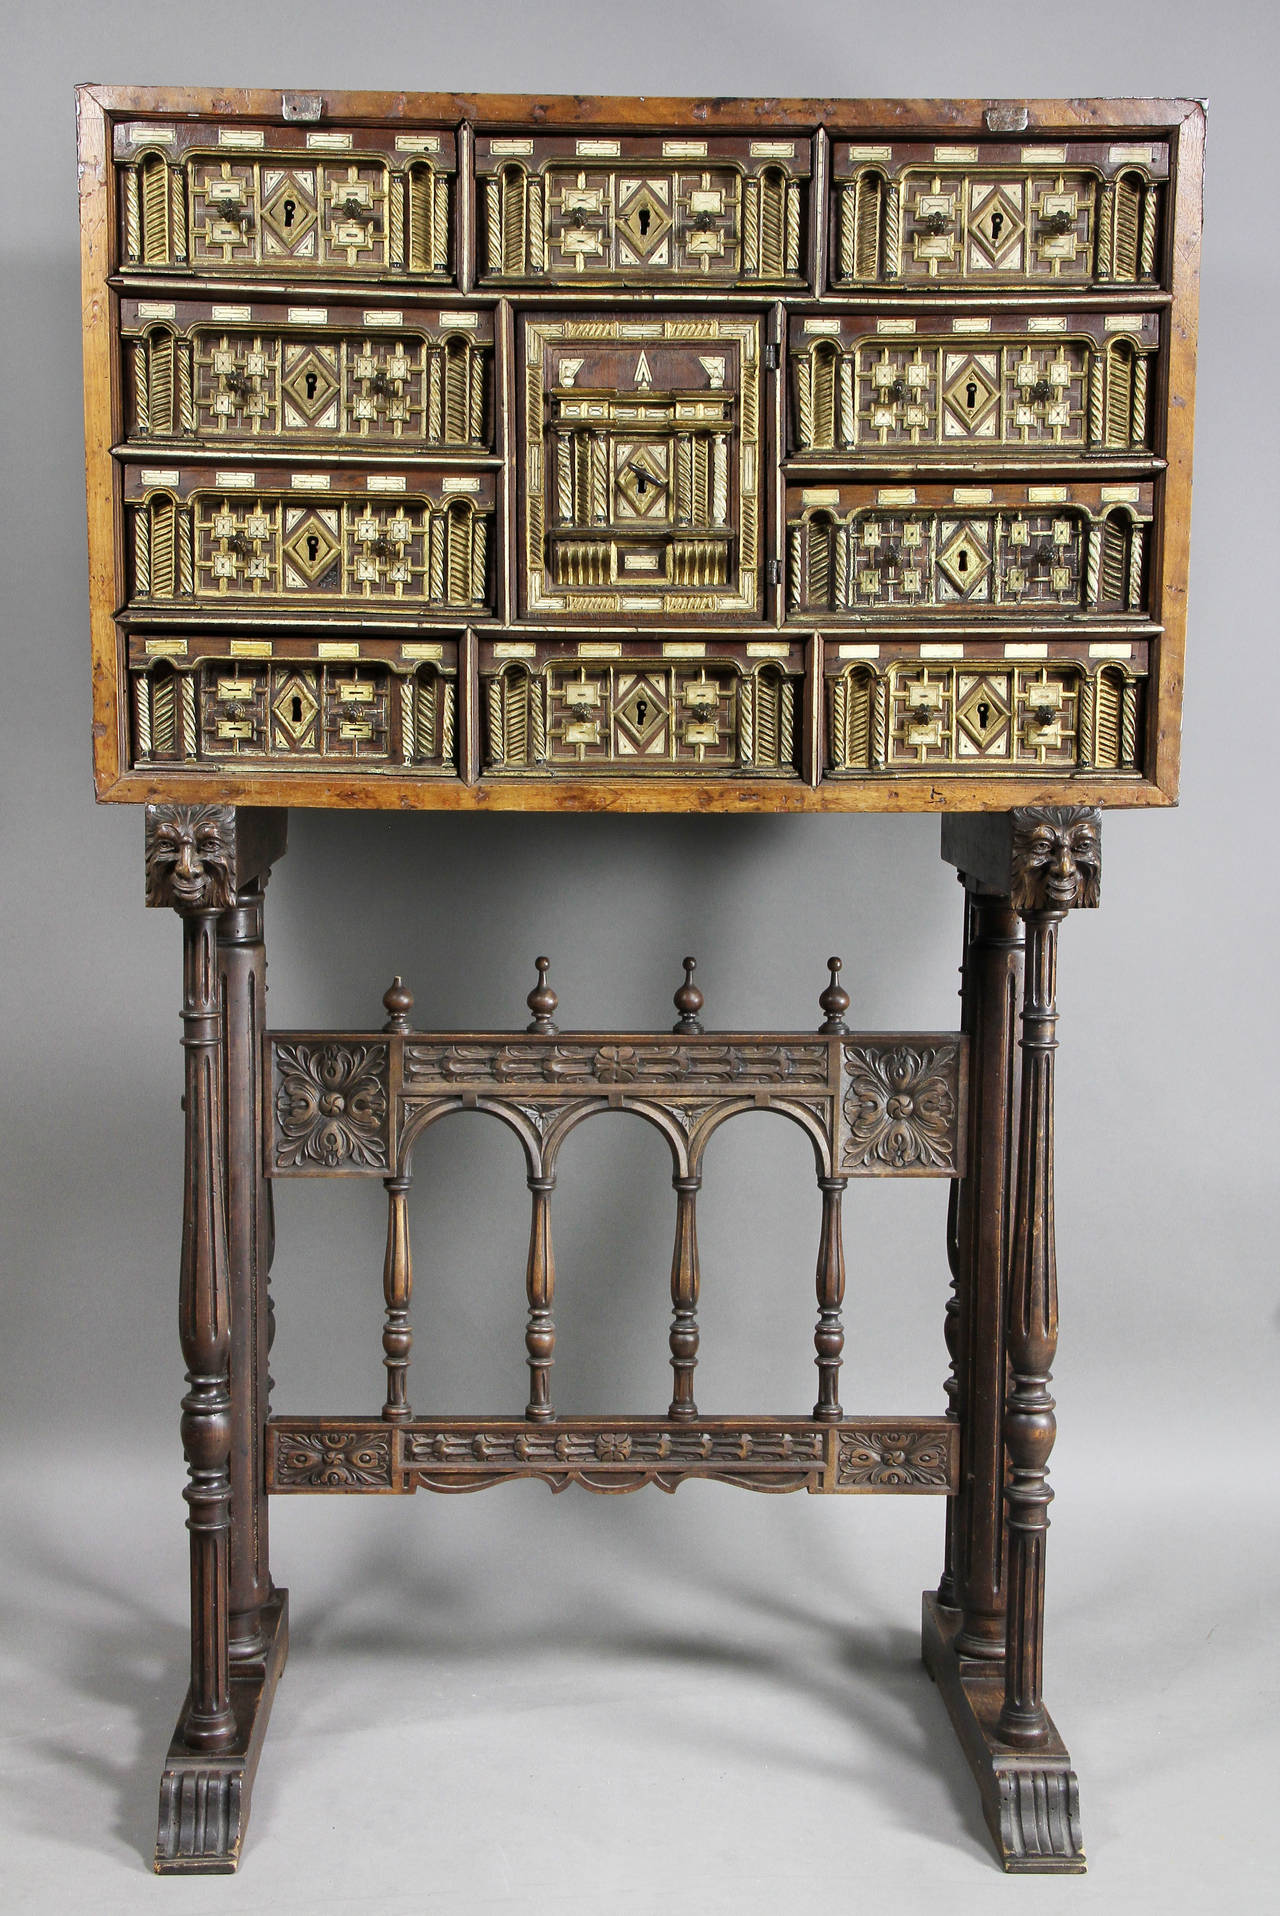 Walnut case with wrought iron strapping over many drawers and a central door enclosing drawers, later carved base of typical form.